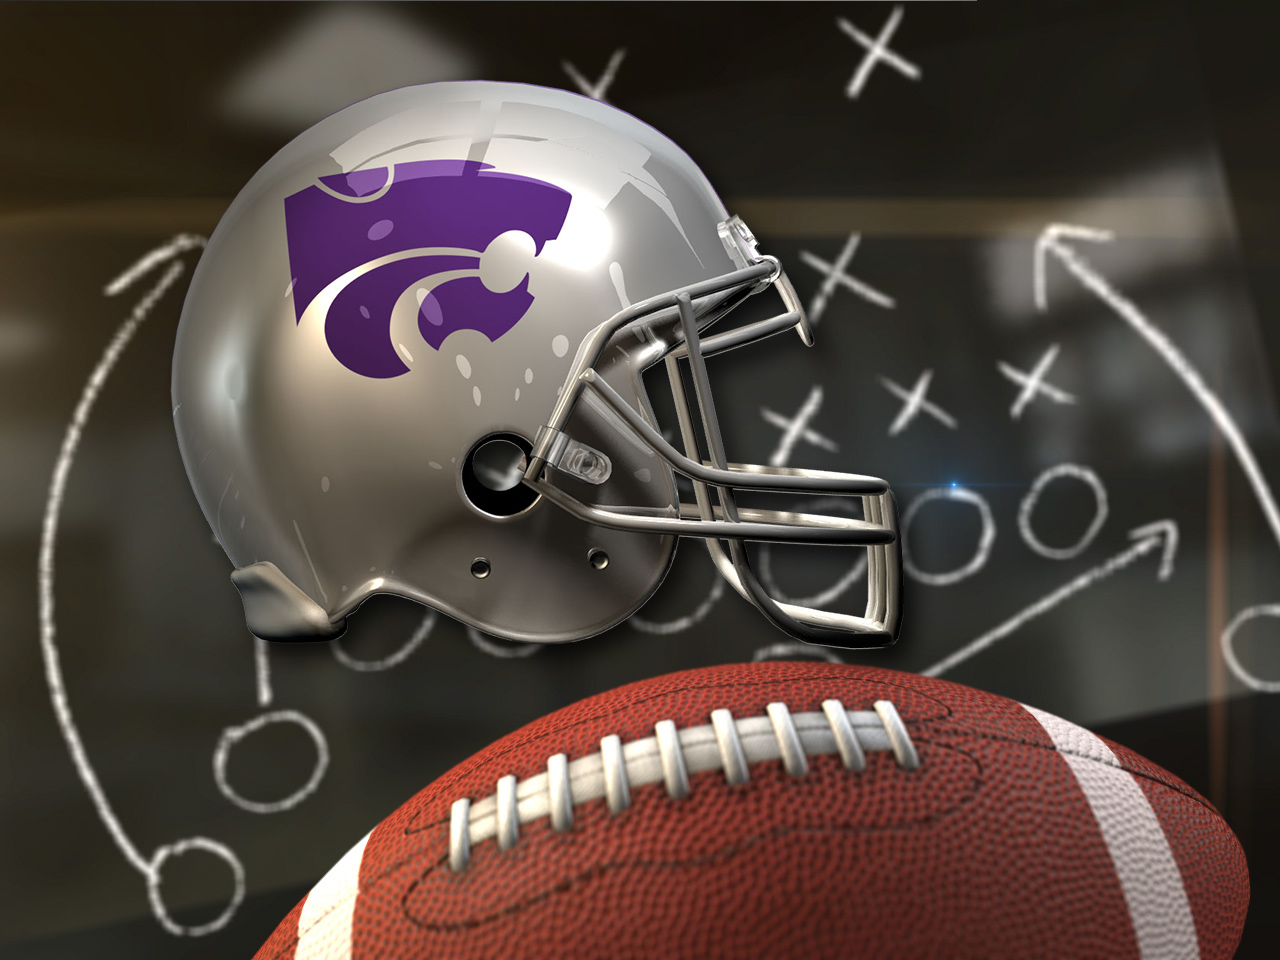 kstate-helmet-football image.jpg